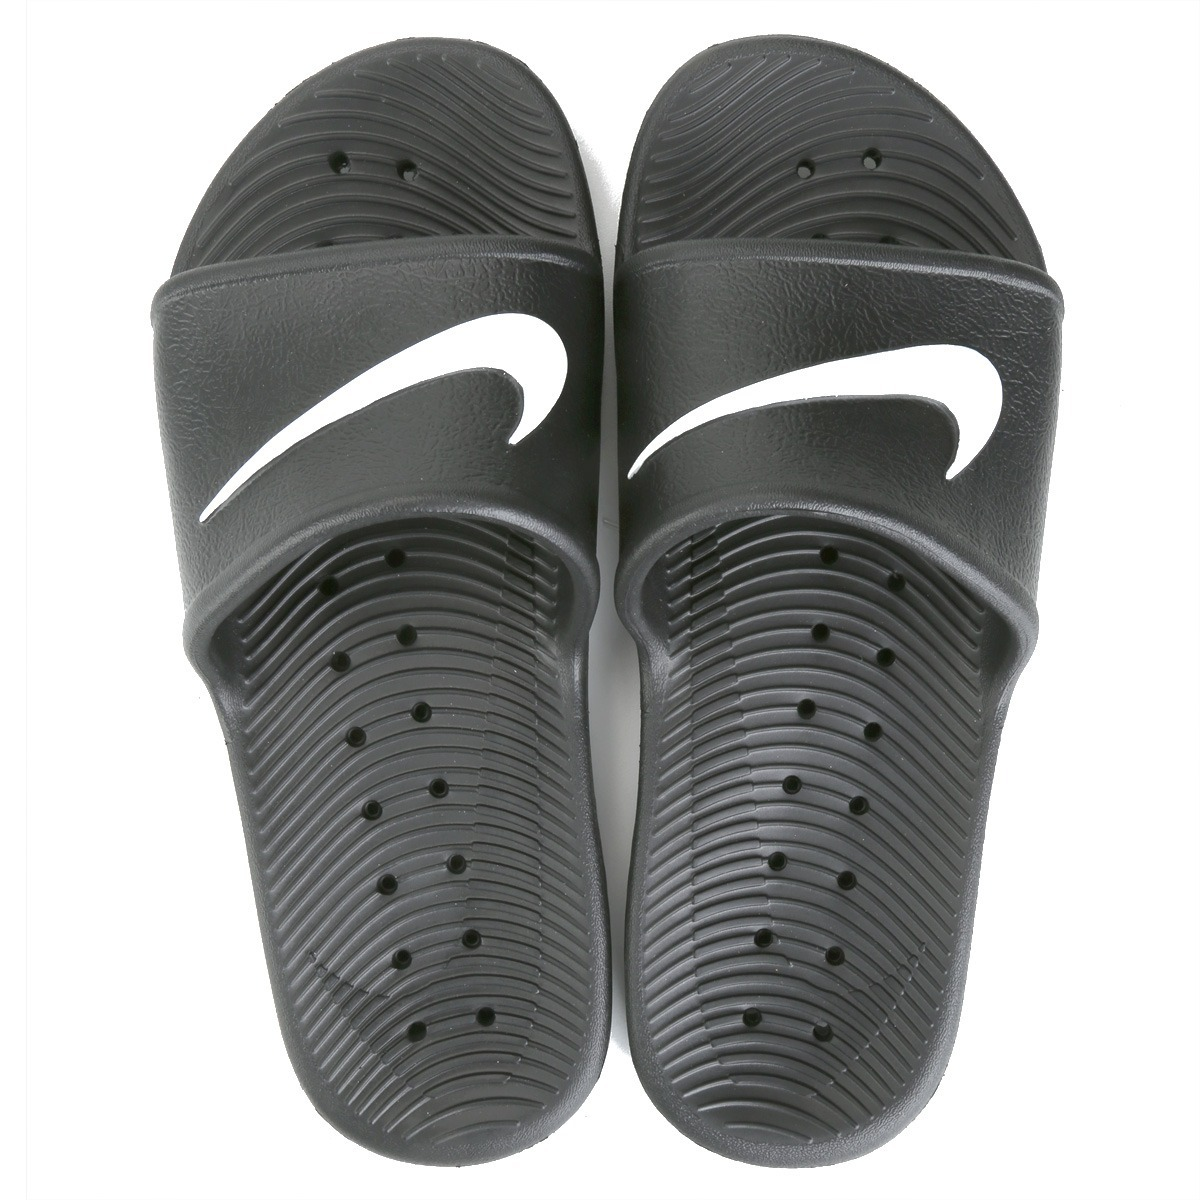 7dbc2605b8 chinelo nike kawa shower masculino original. Carregando zoom.